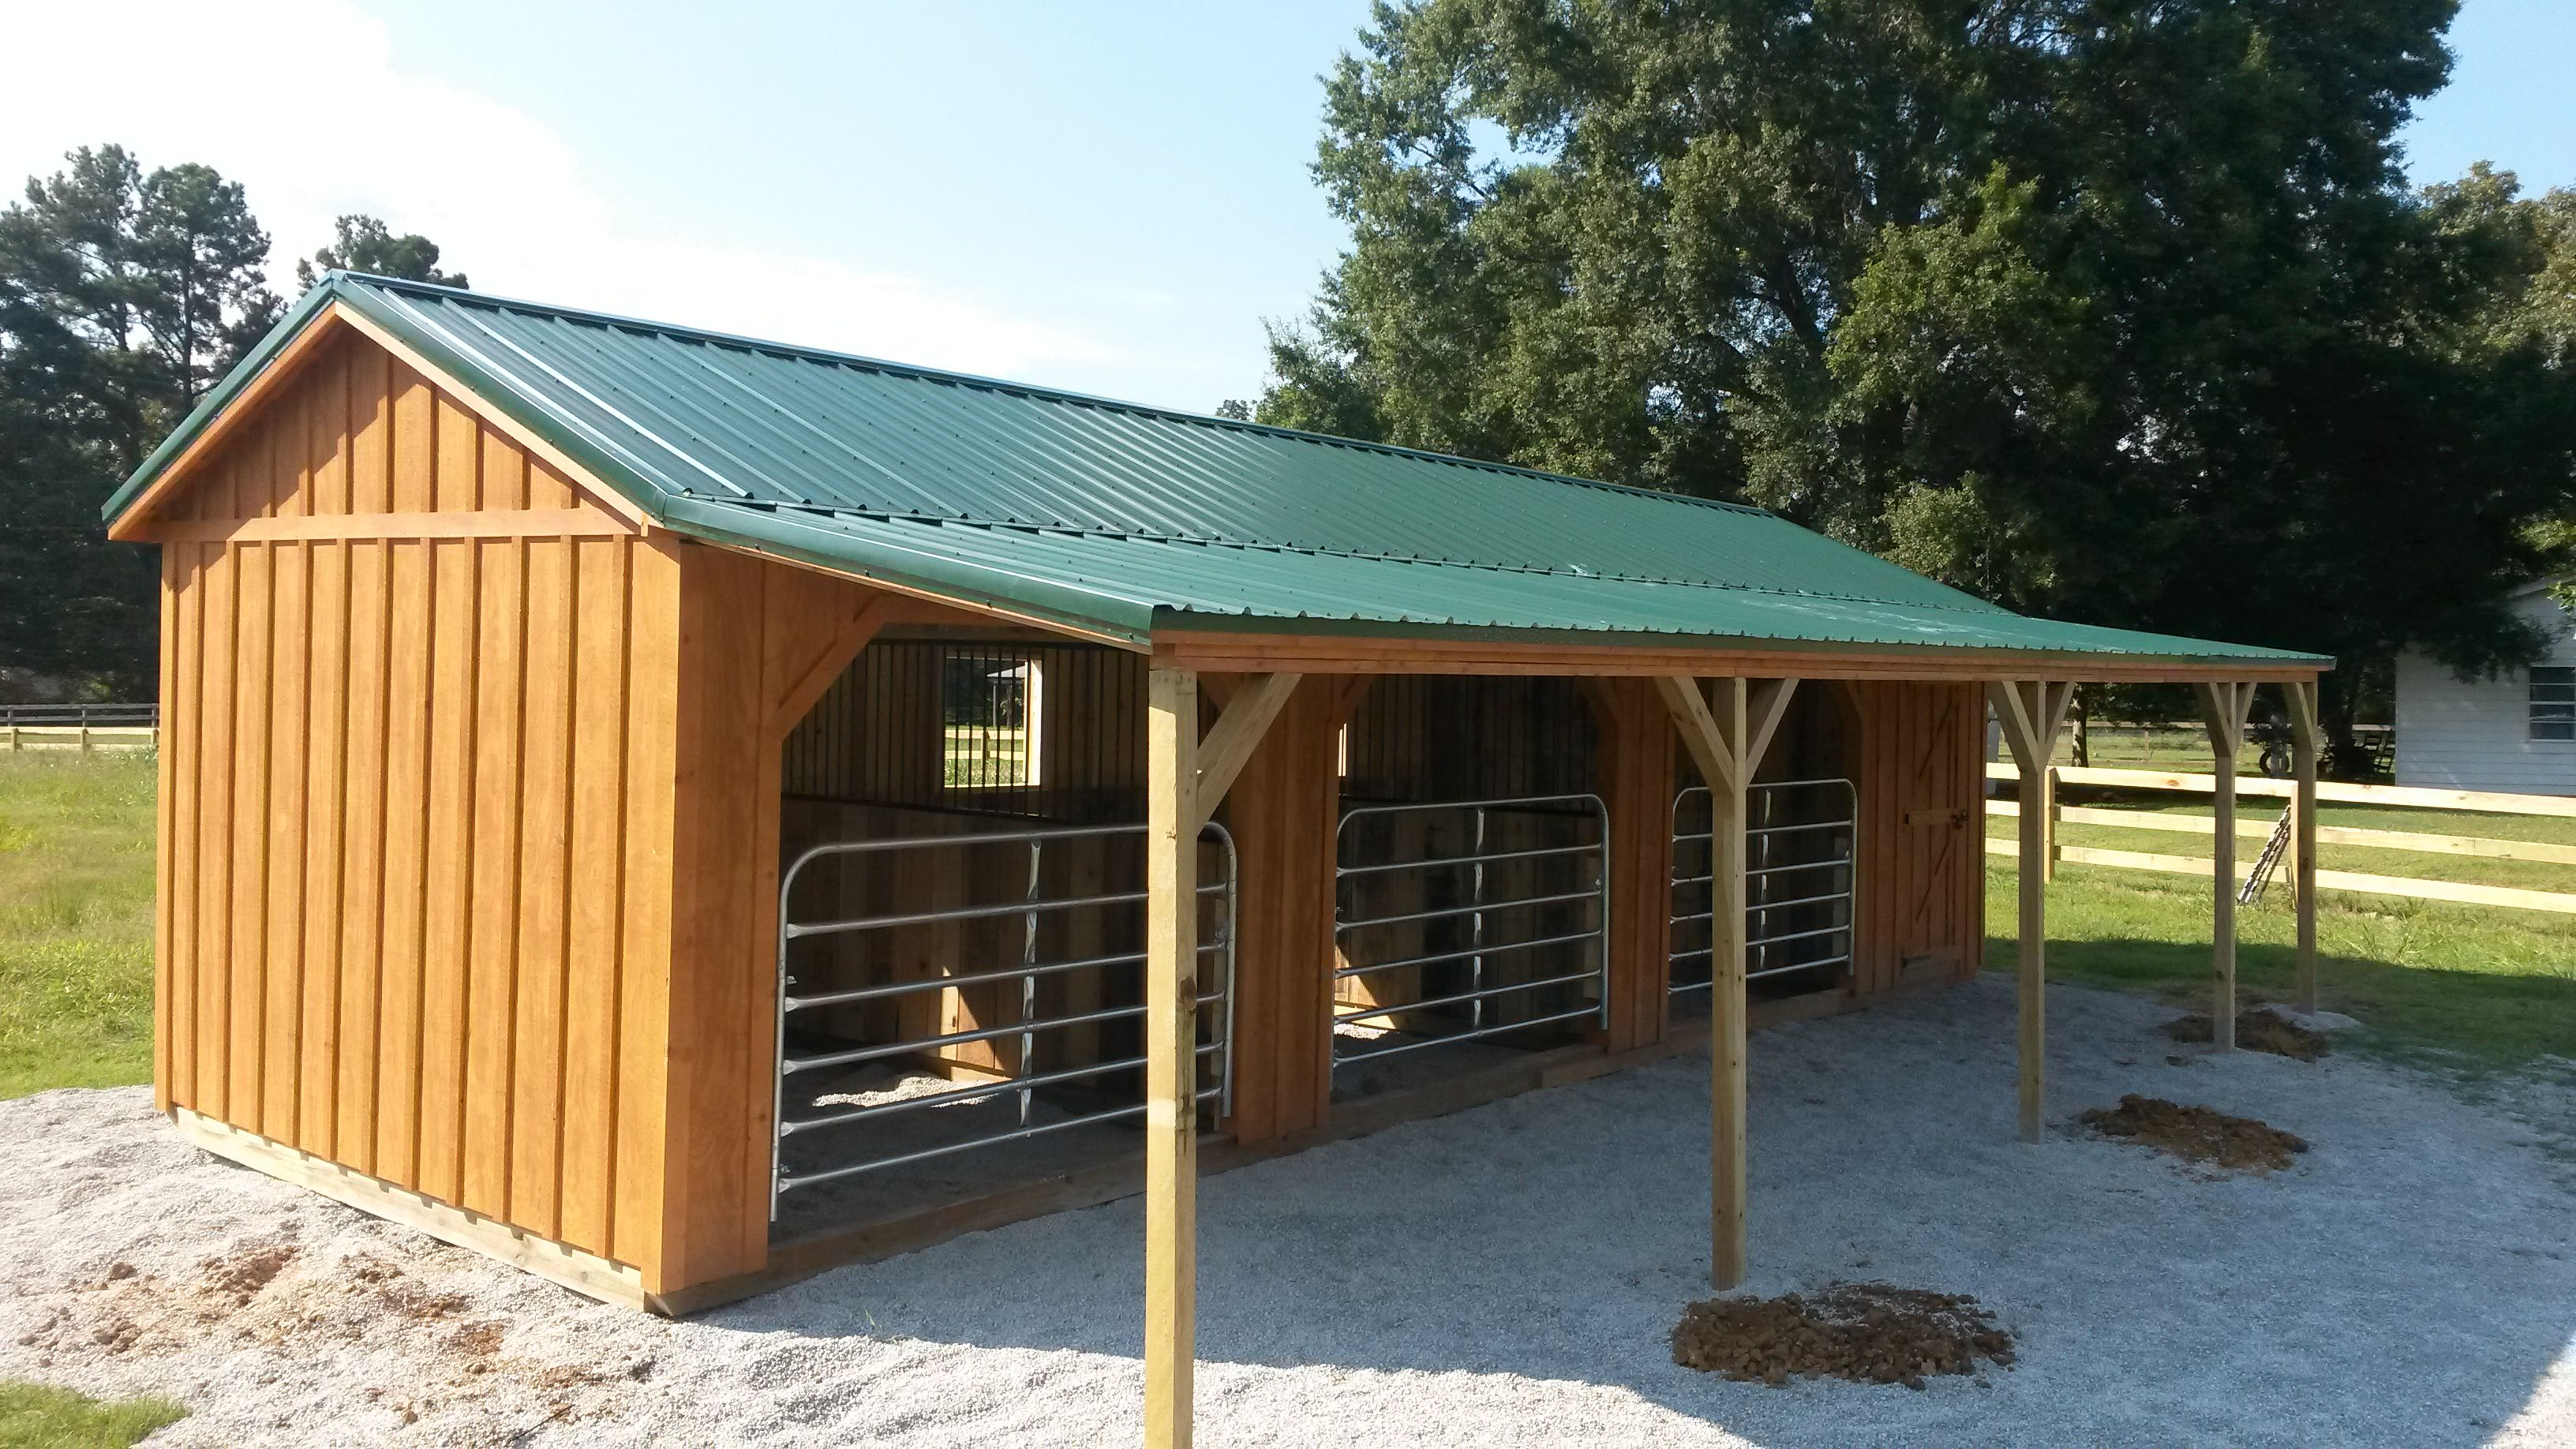 Horse run ins and sheds portable horse barn manufacturer for Farm shed ideas